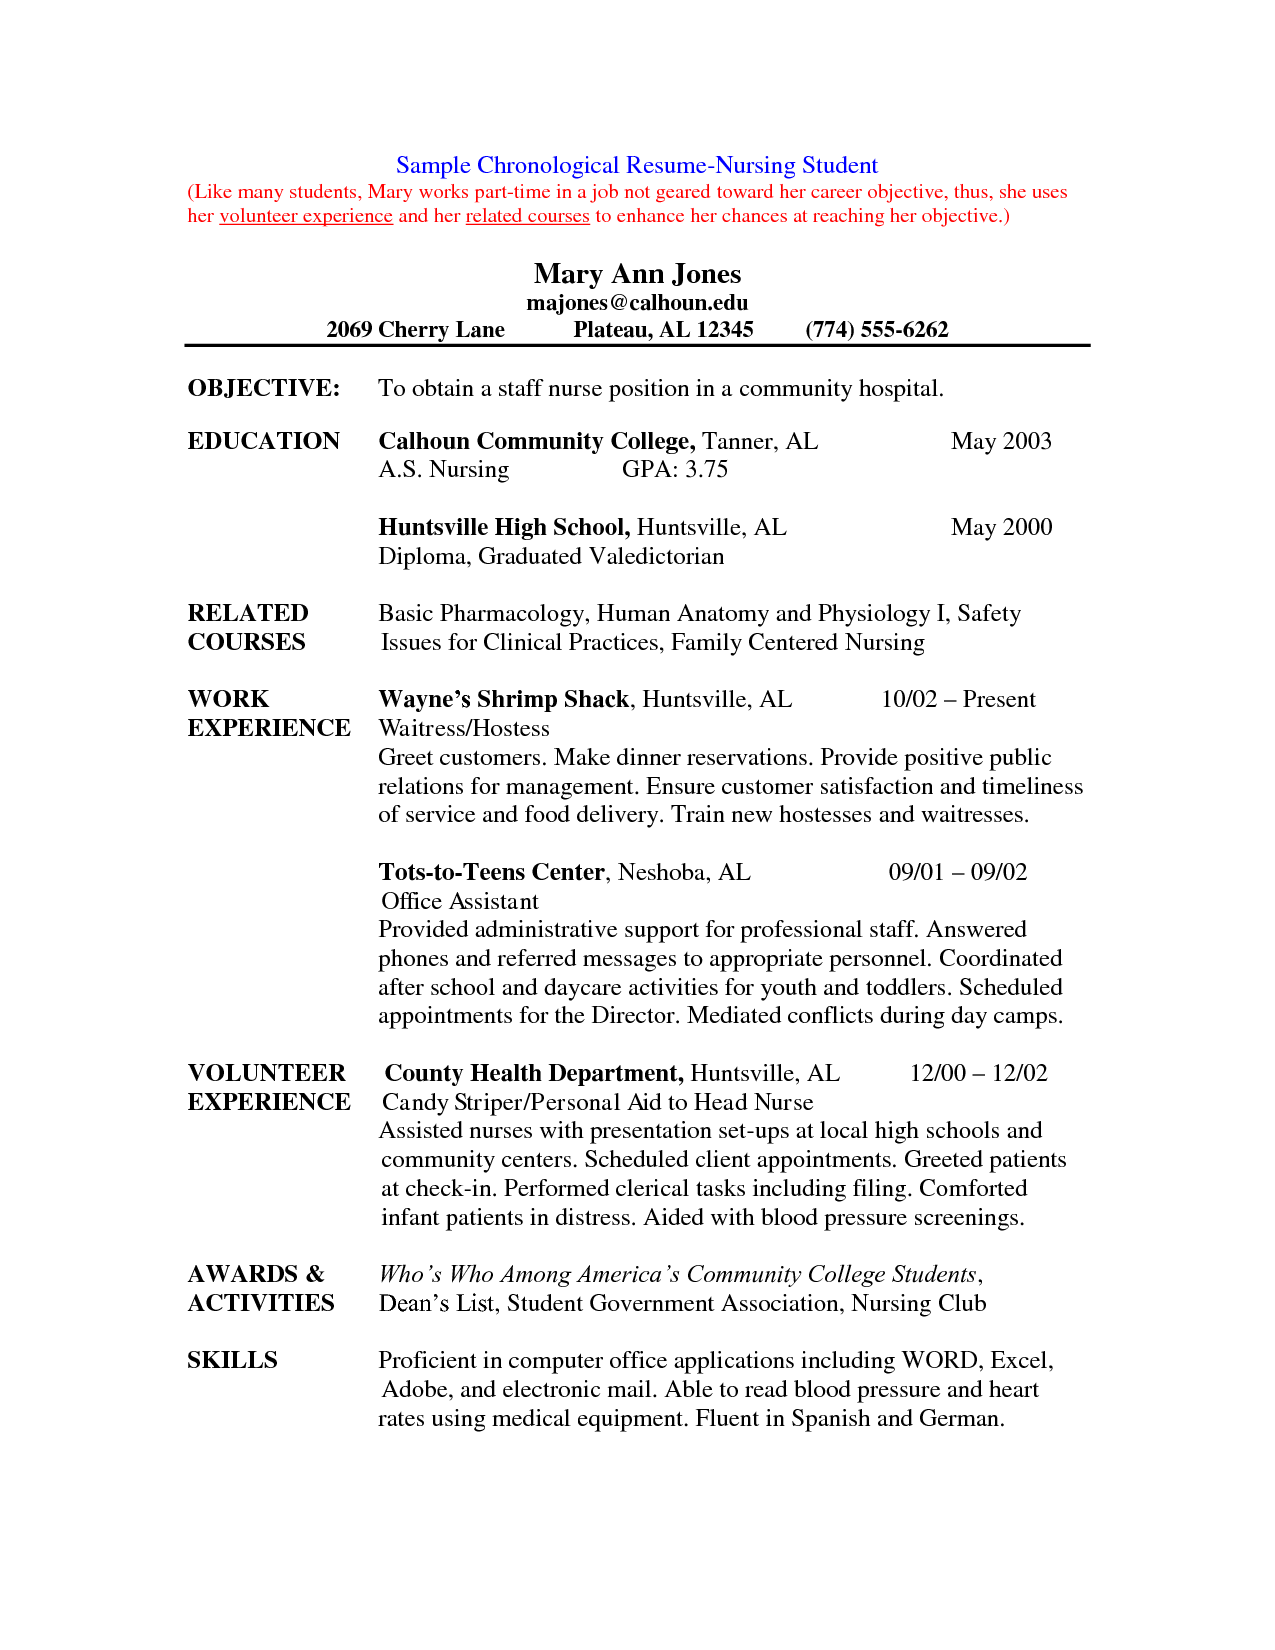 Sample New Rn Resume  Nursing Student Resume  Nursing